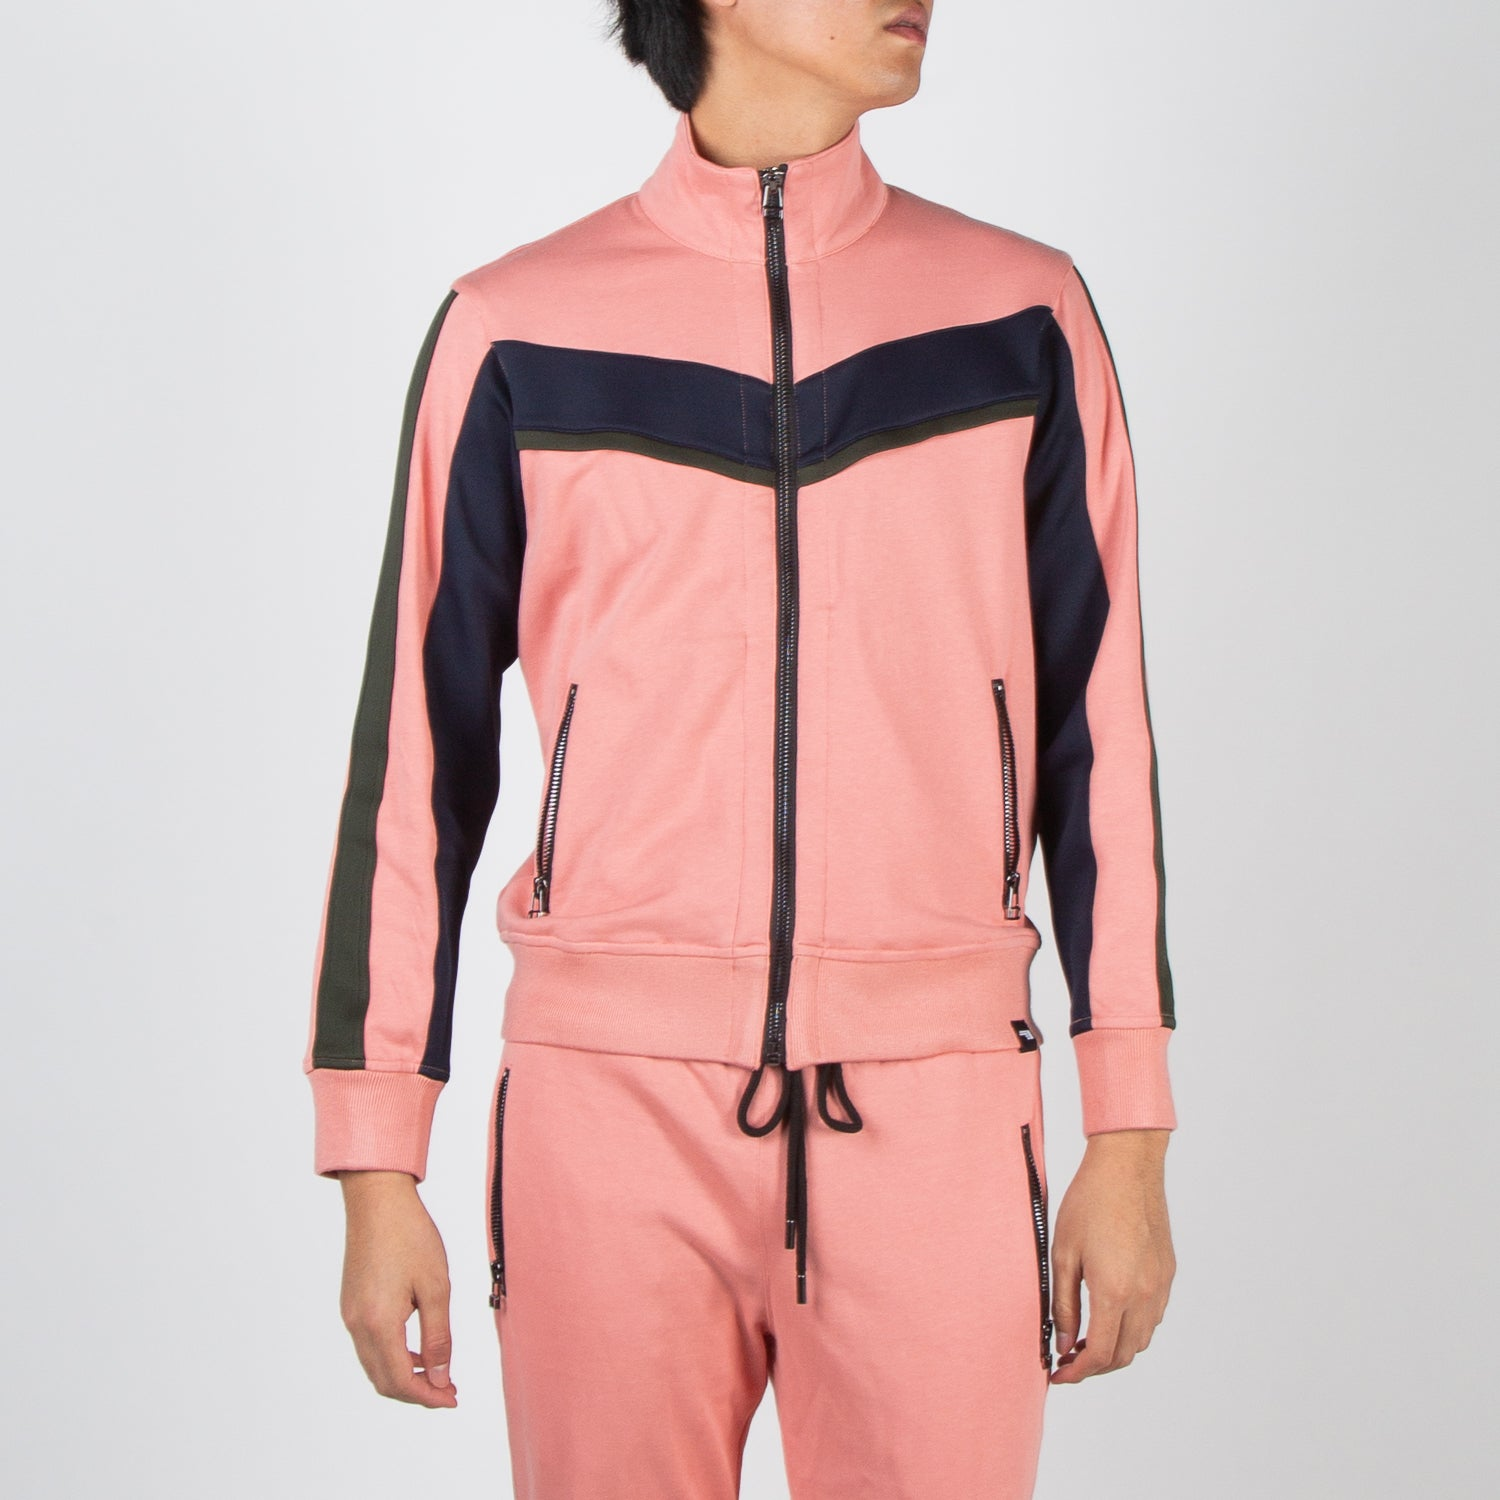 Pink track jacket by Dim Mak at Secret Location